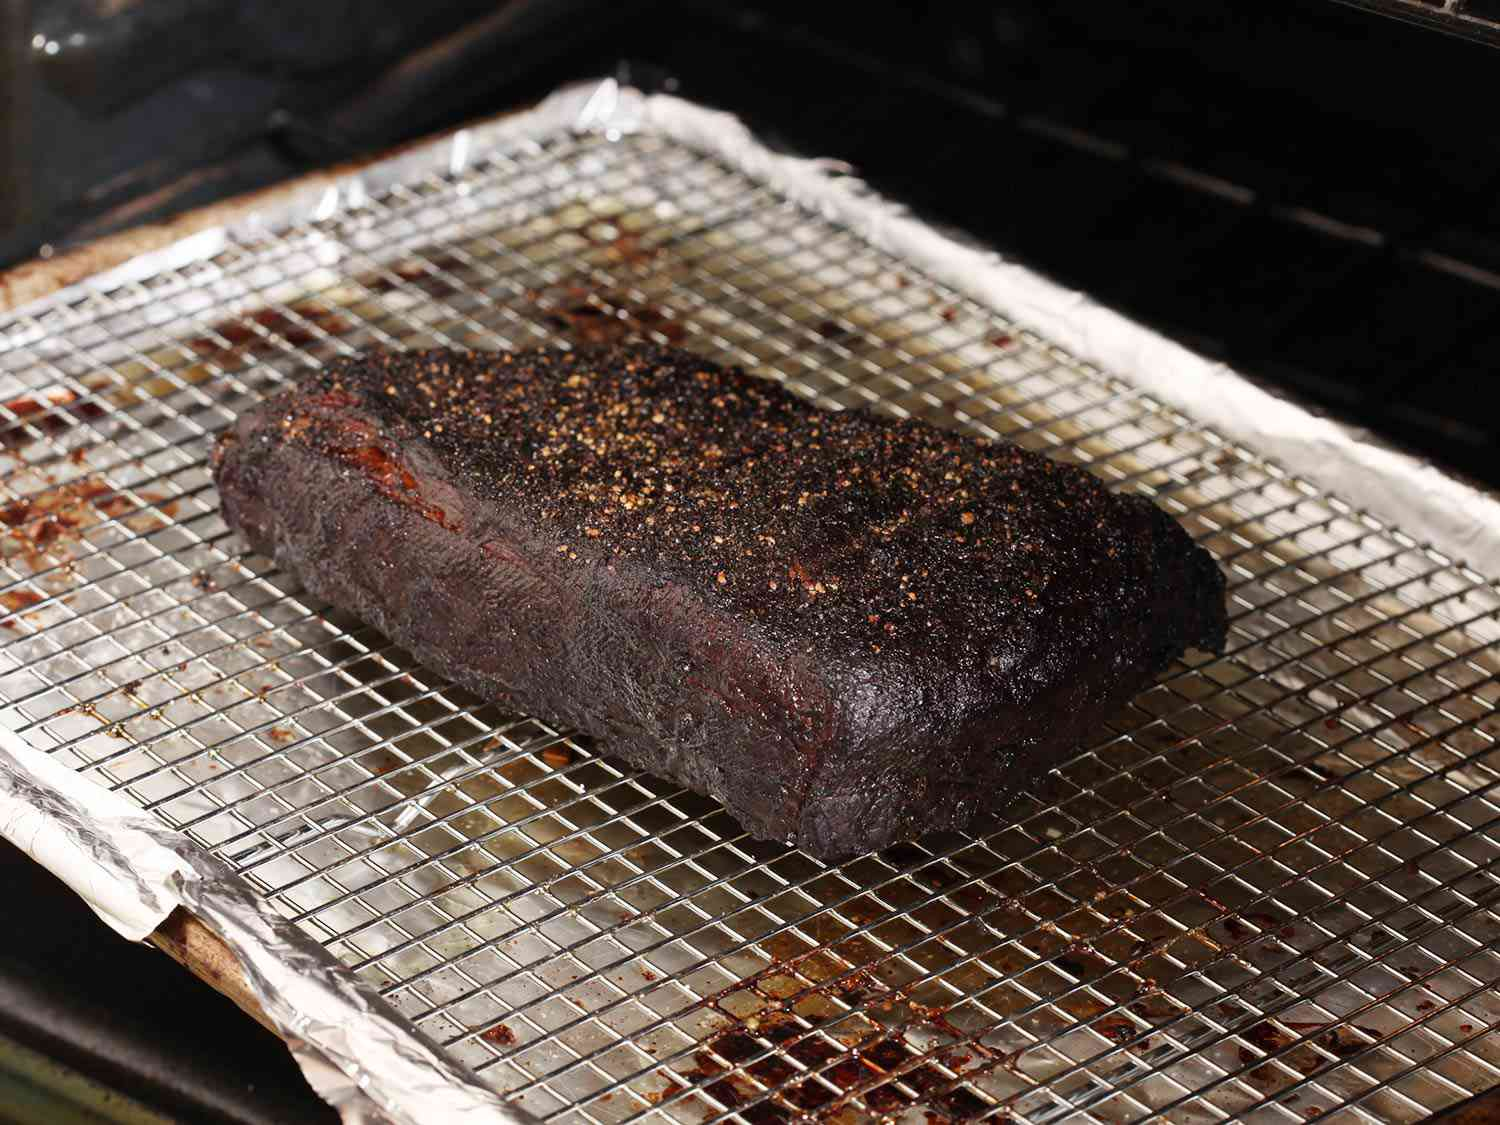 Finished brisket that's been cooked sous vide and then cooked low and slow in the oven, on a wire rack over a foil-lined baking sheet